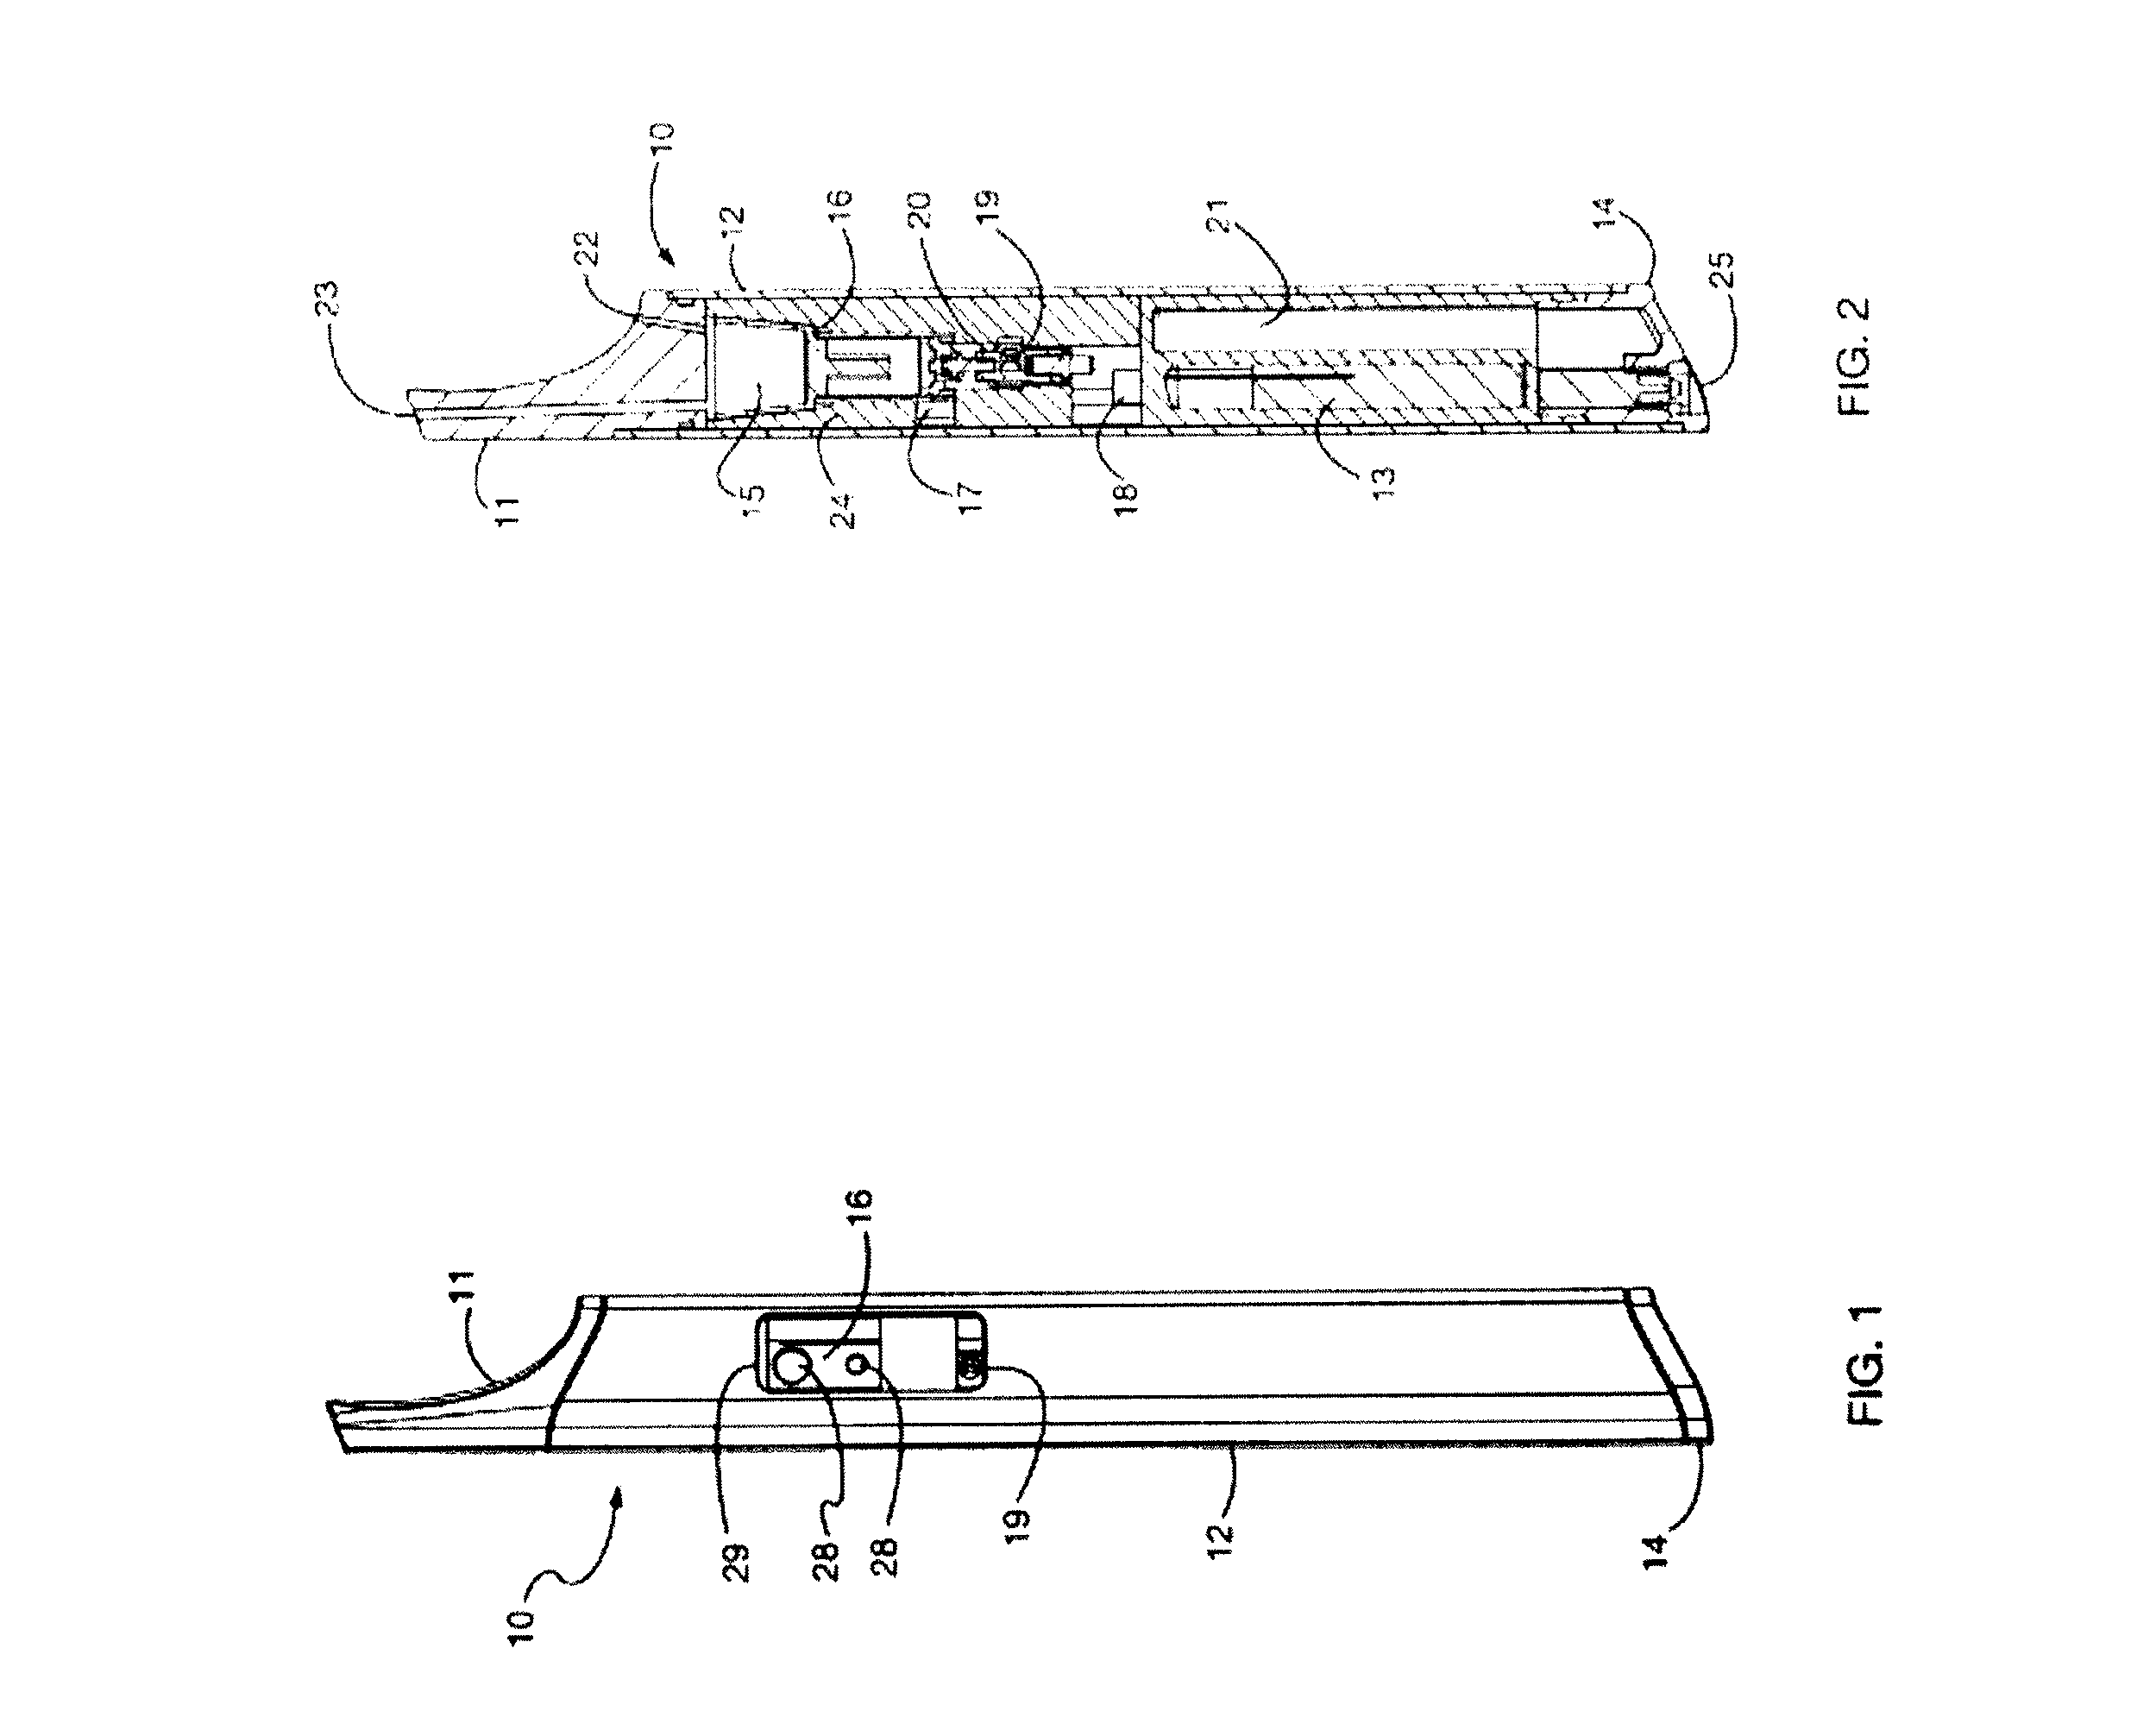 US10244793B2 - Devices for vaporization of a substance